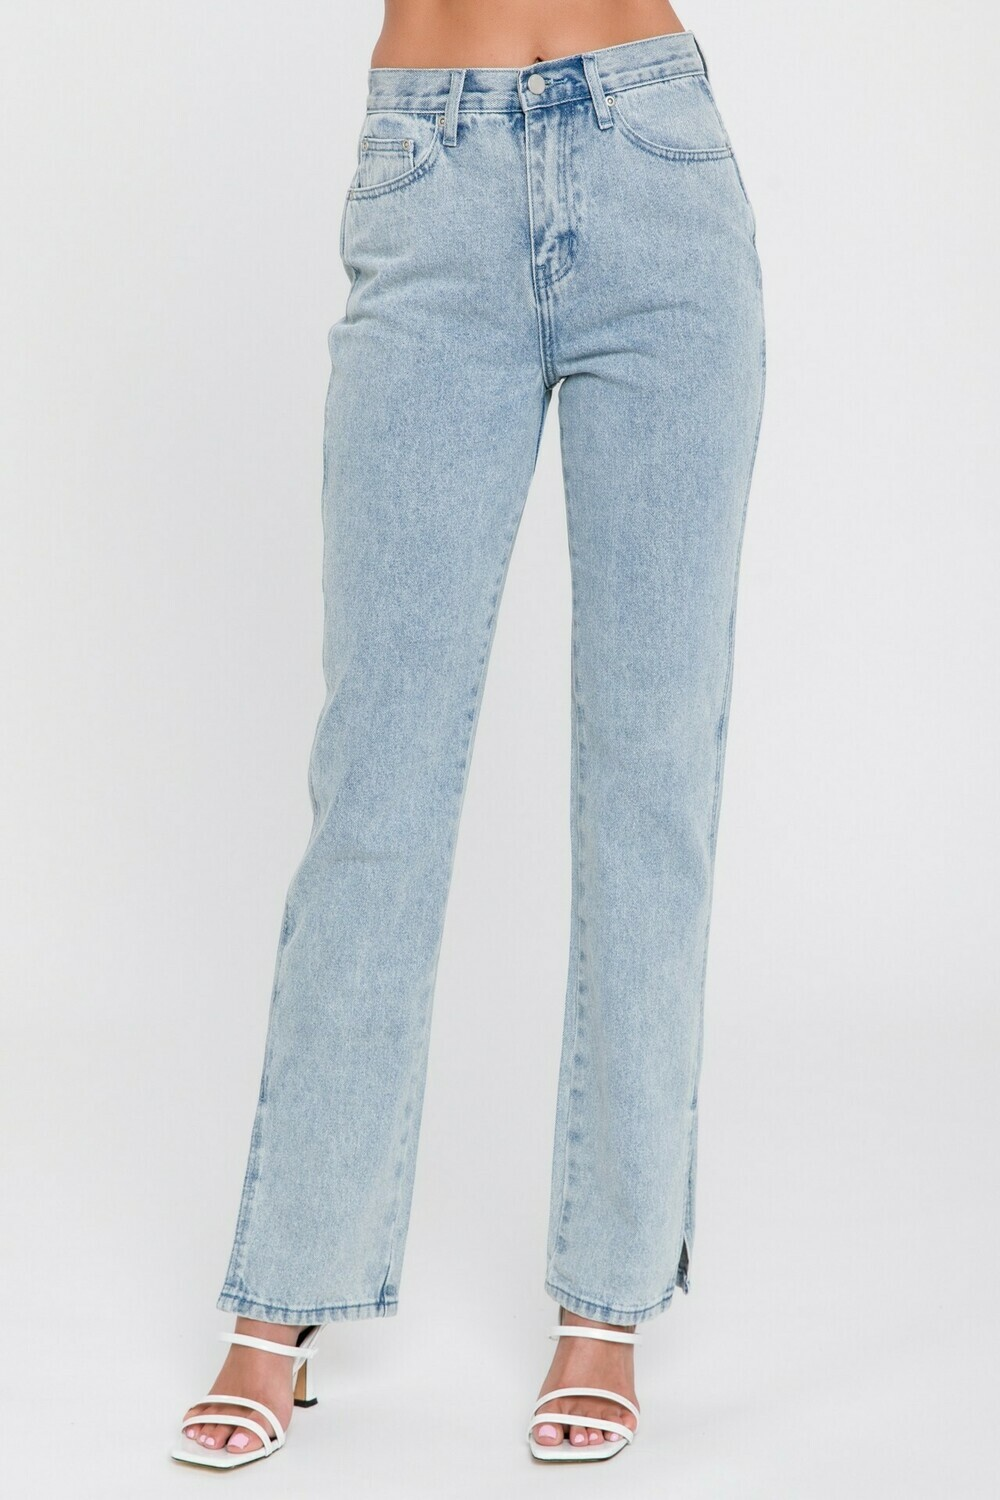 English Factory Straight Jeans with Slit